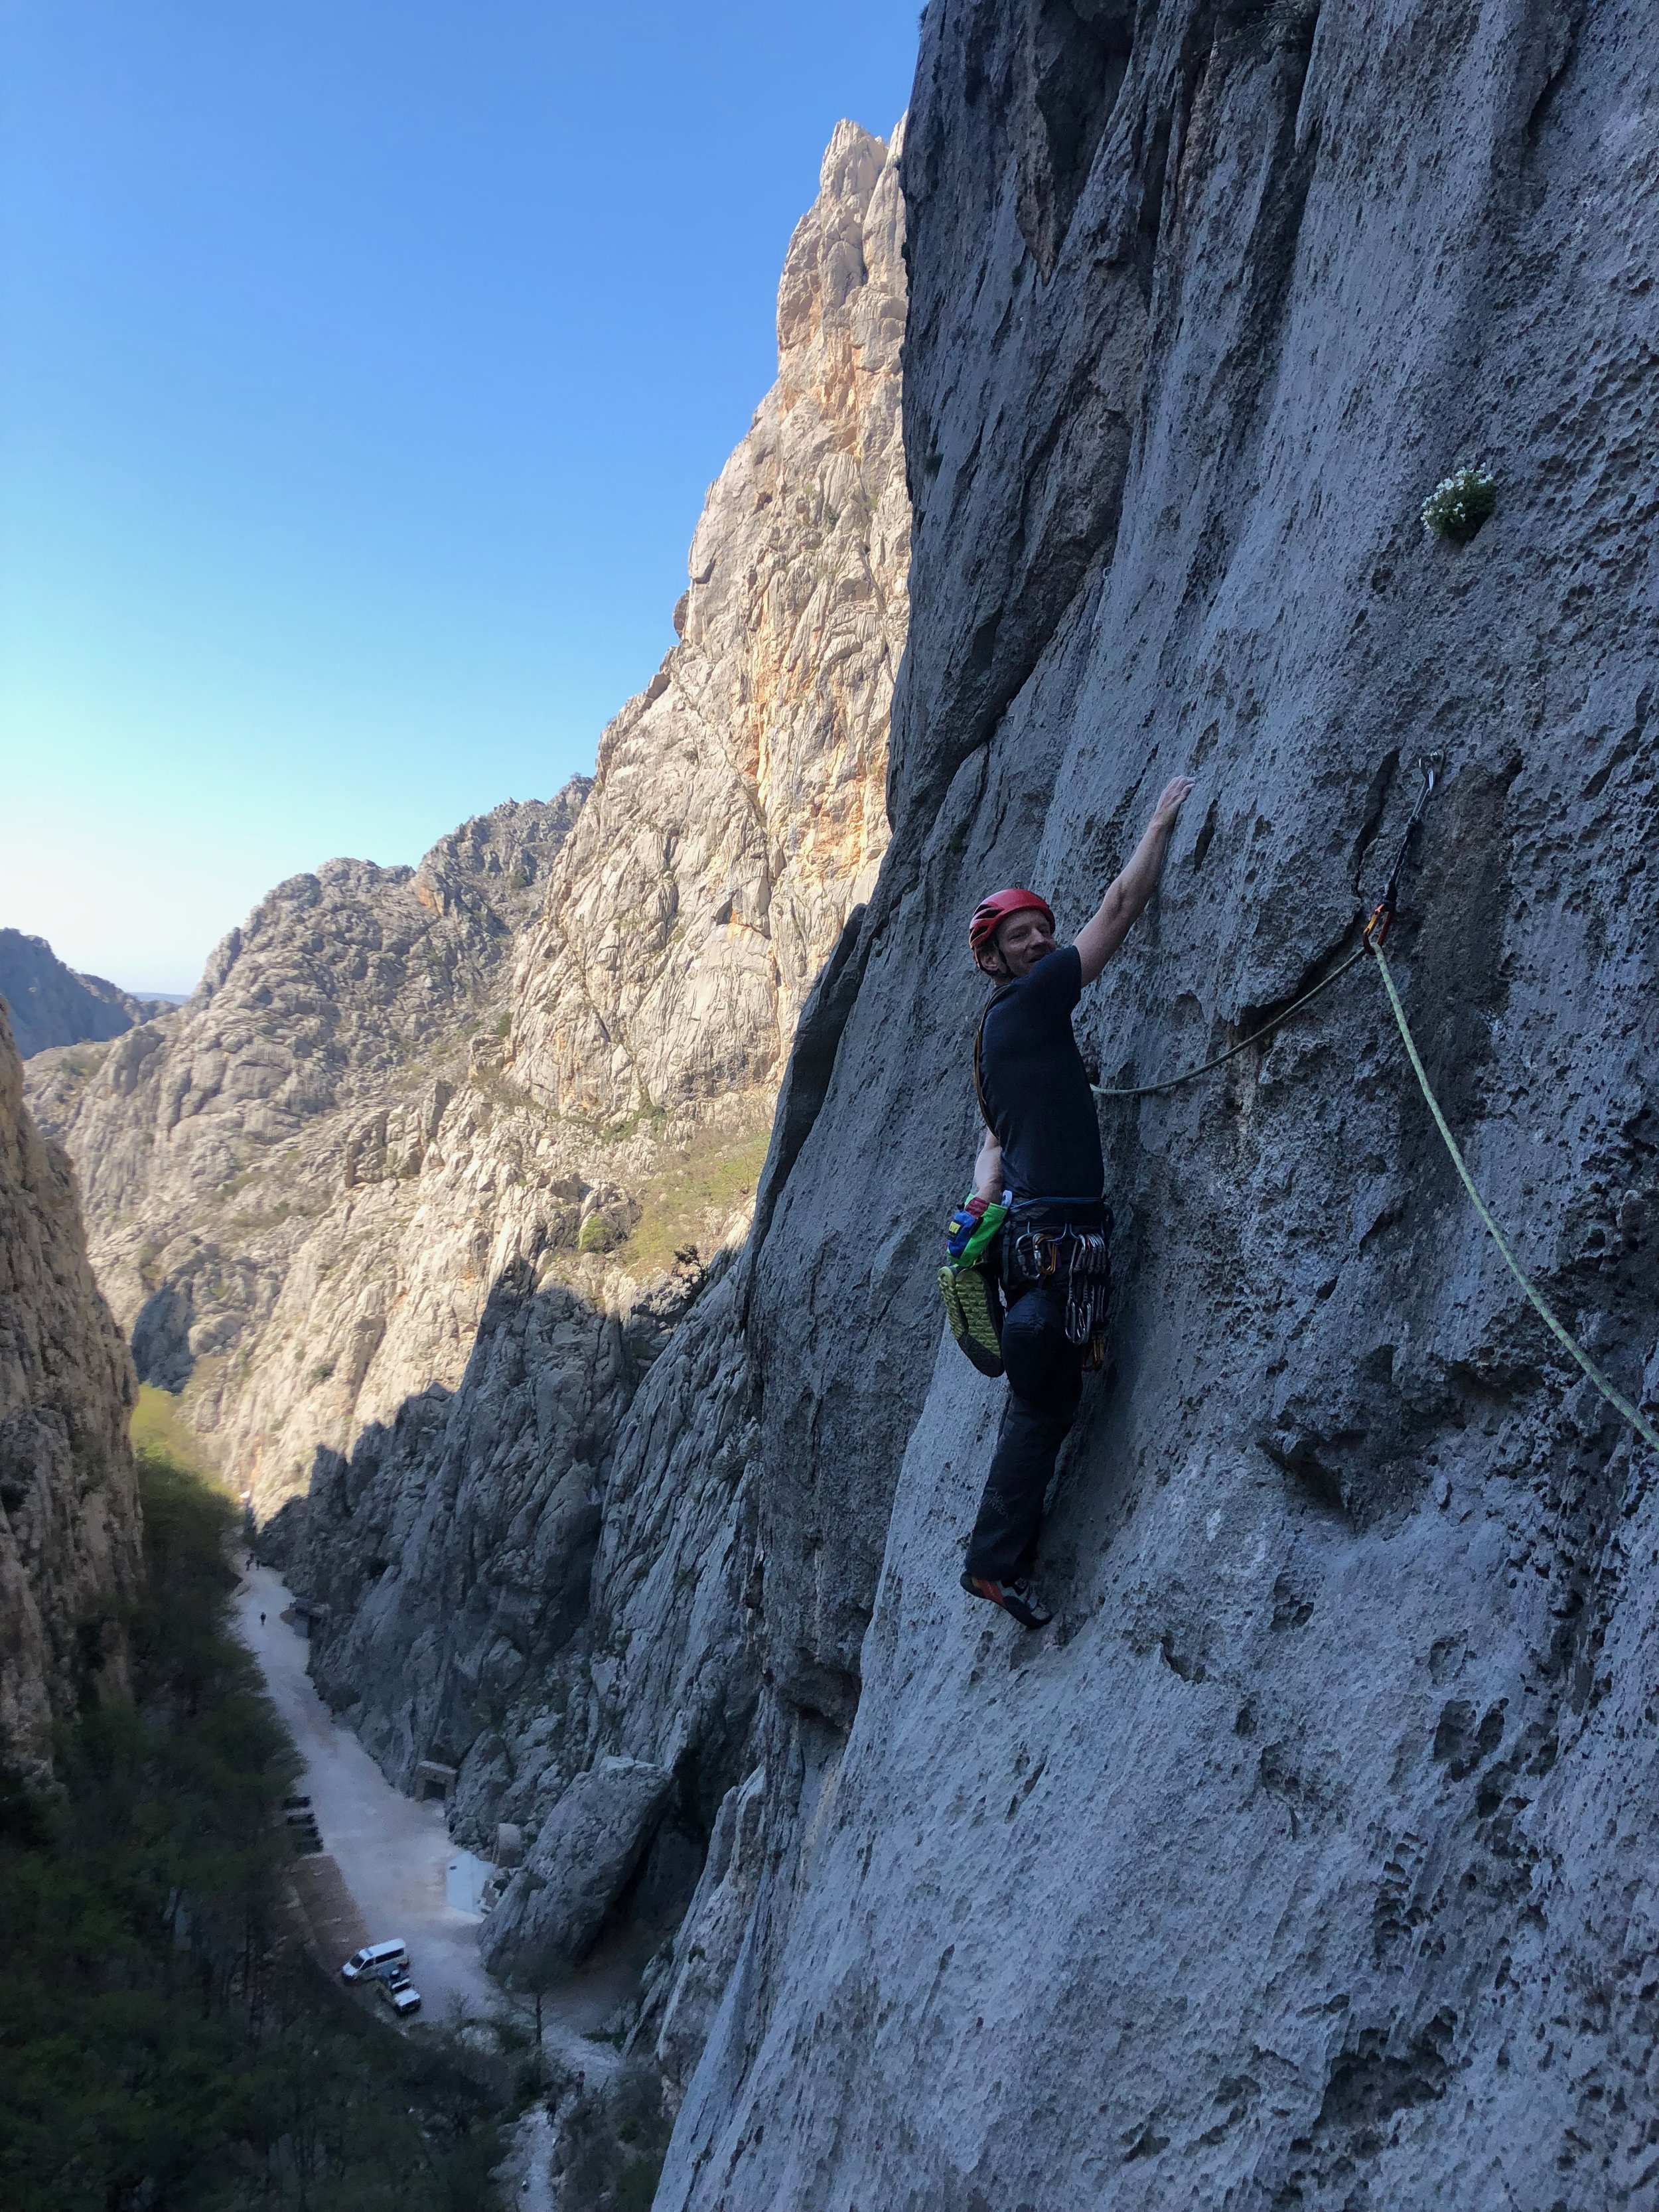 And we didn't limit ourselves to just the Alps! A little multi pitch runout sport climbing in Paklenica, Croatia.